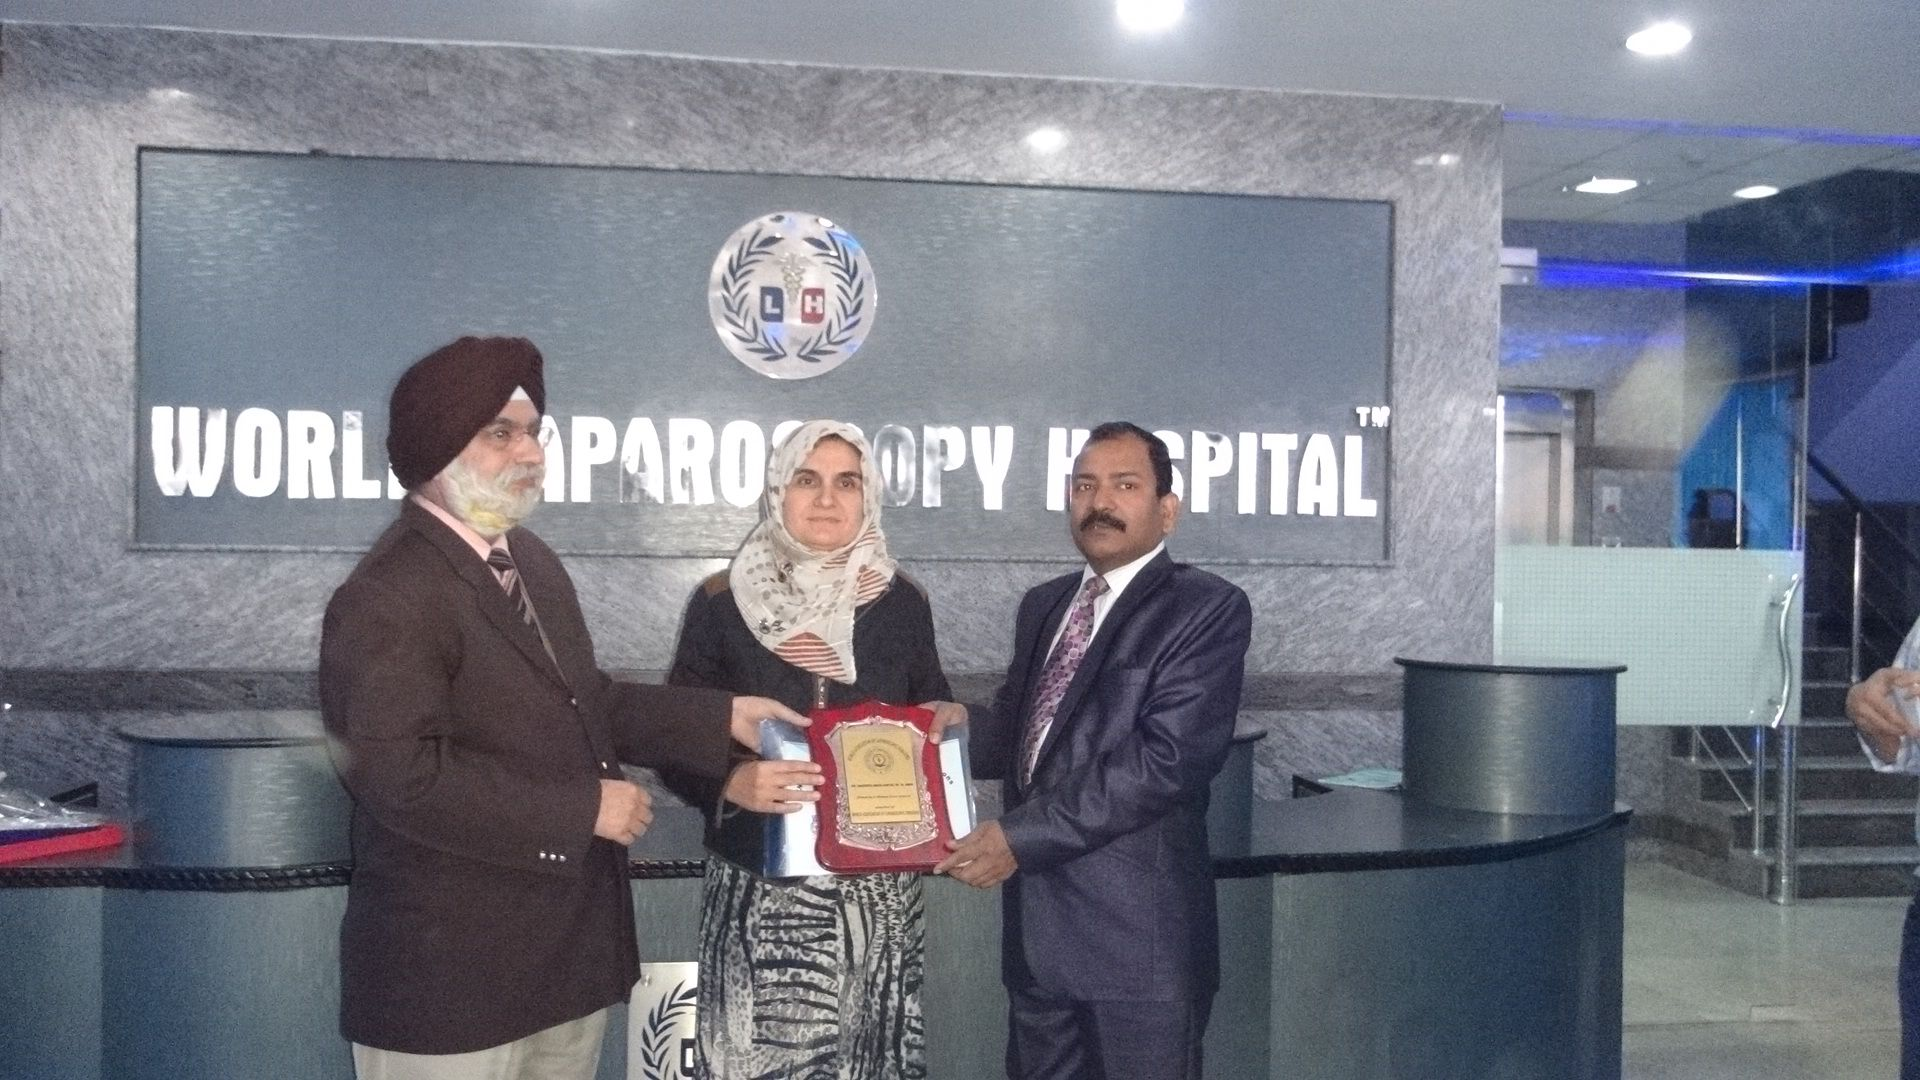 Dr. Nasreen Abdulghfor Sh. M. Amin receiving certificate of Fellowship in minimal access Surgery at World Laparoscopy Hospital. For more detail please log on to www.laparoscopyhospital.com